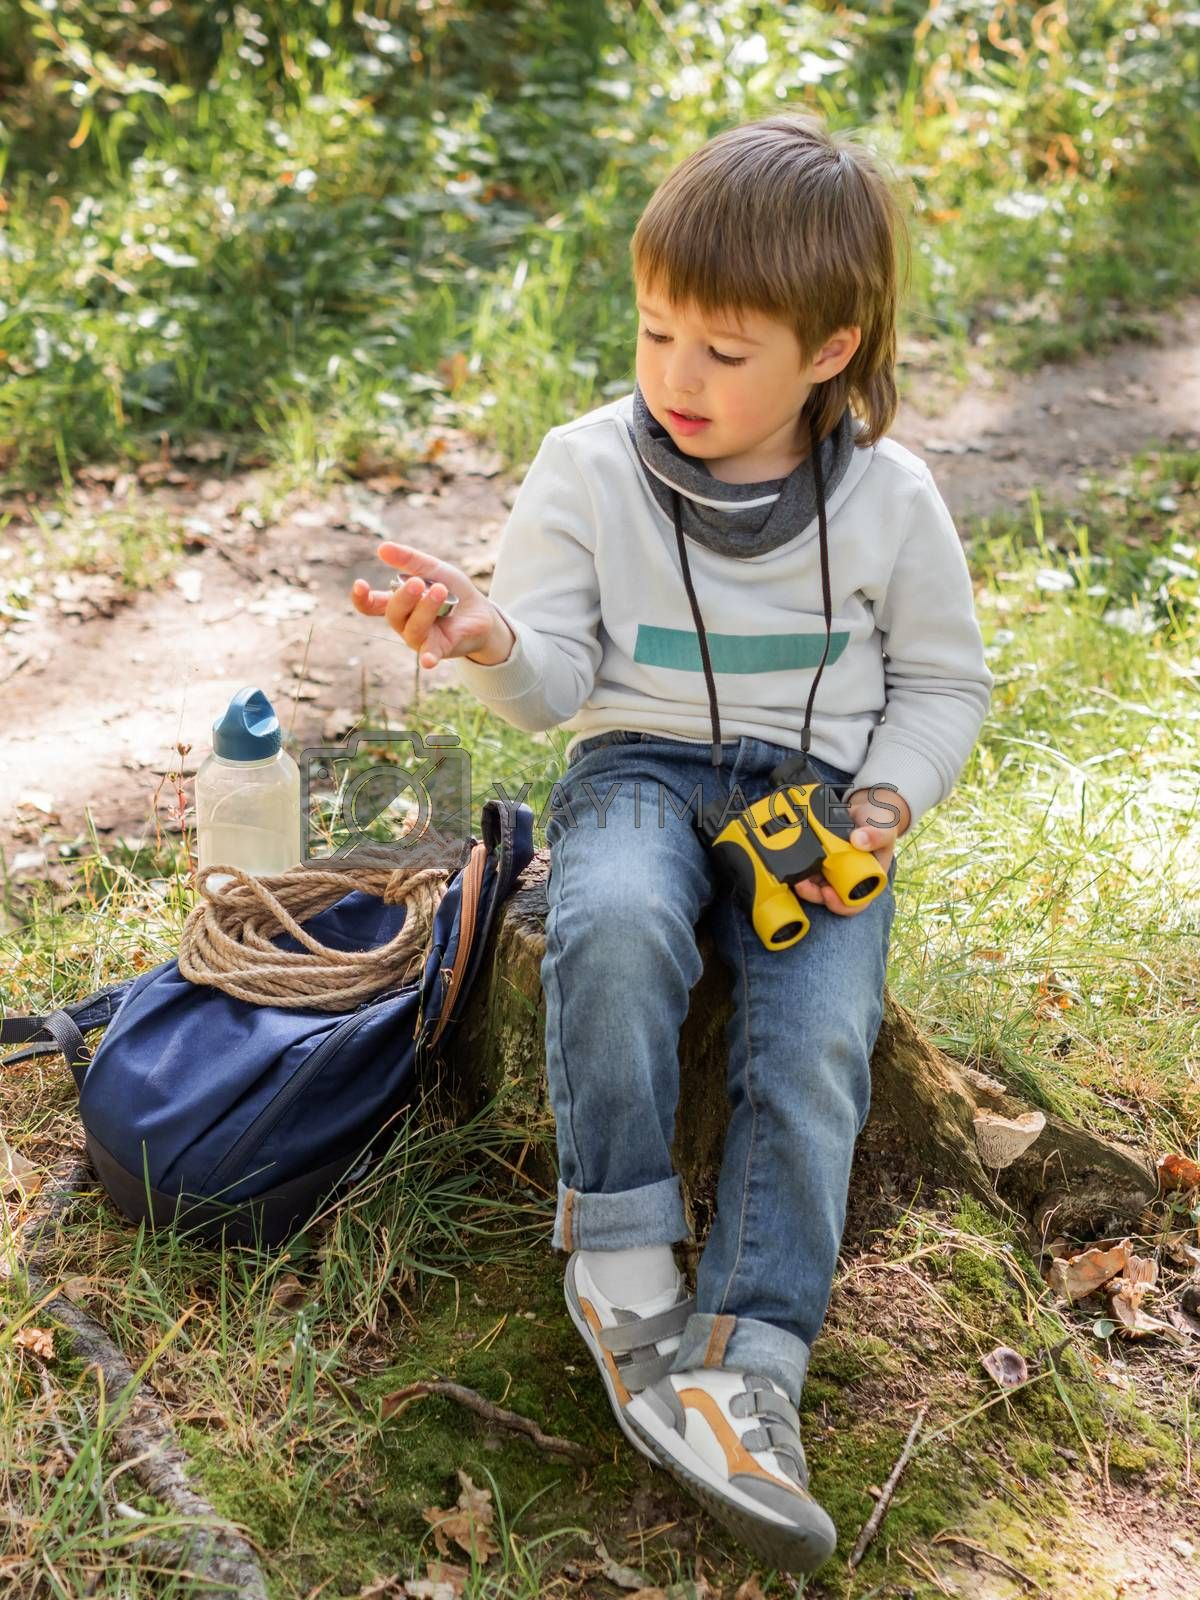 Little explorer on hike in forest. Boy with binoculars and compass sits on stump and reads map. Outdoor leisure activity for children. Summer journey for young tourist.